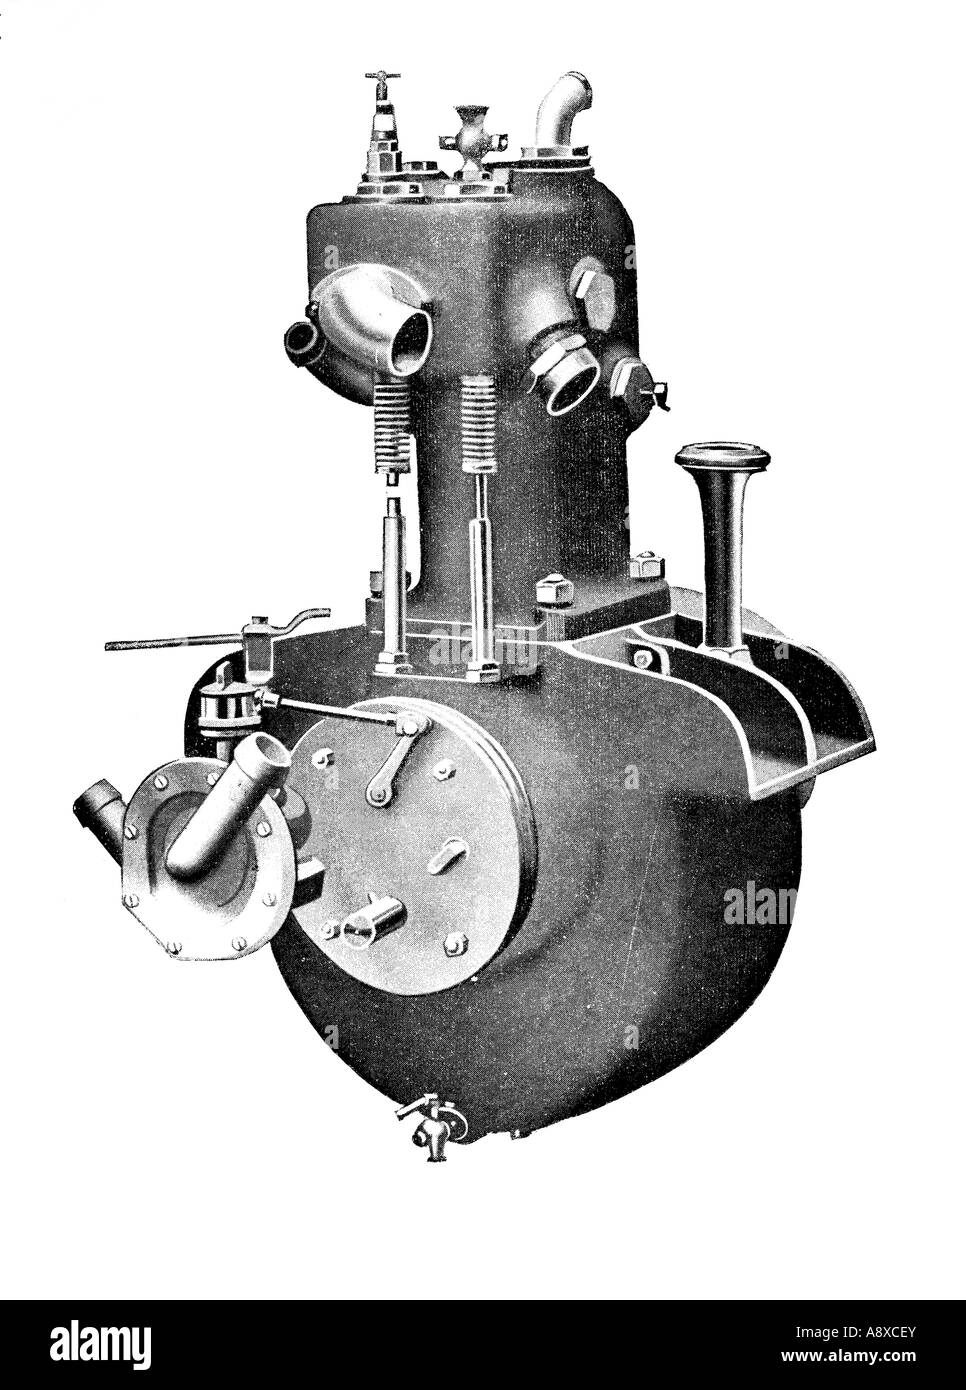 Car Engine Diagram Photos Car Engine Diagram Images – Labeled Diagram Of A Steam Engine